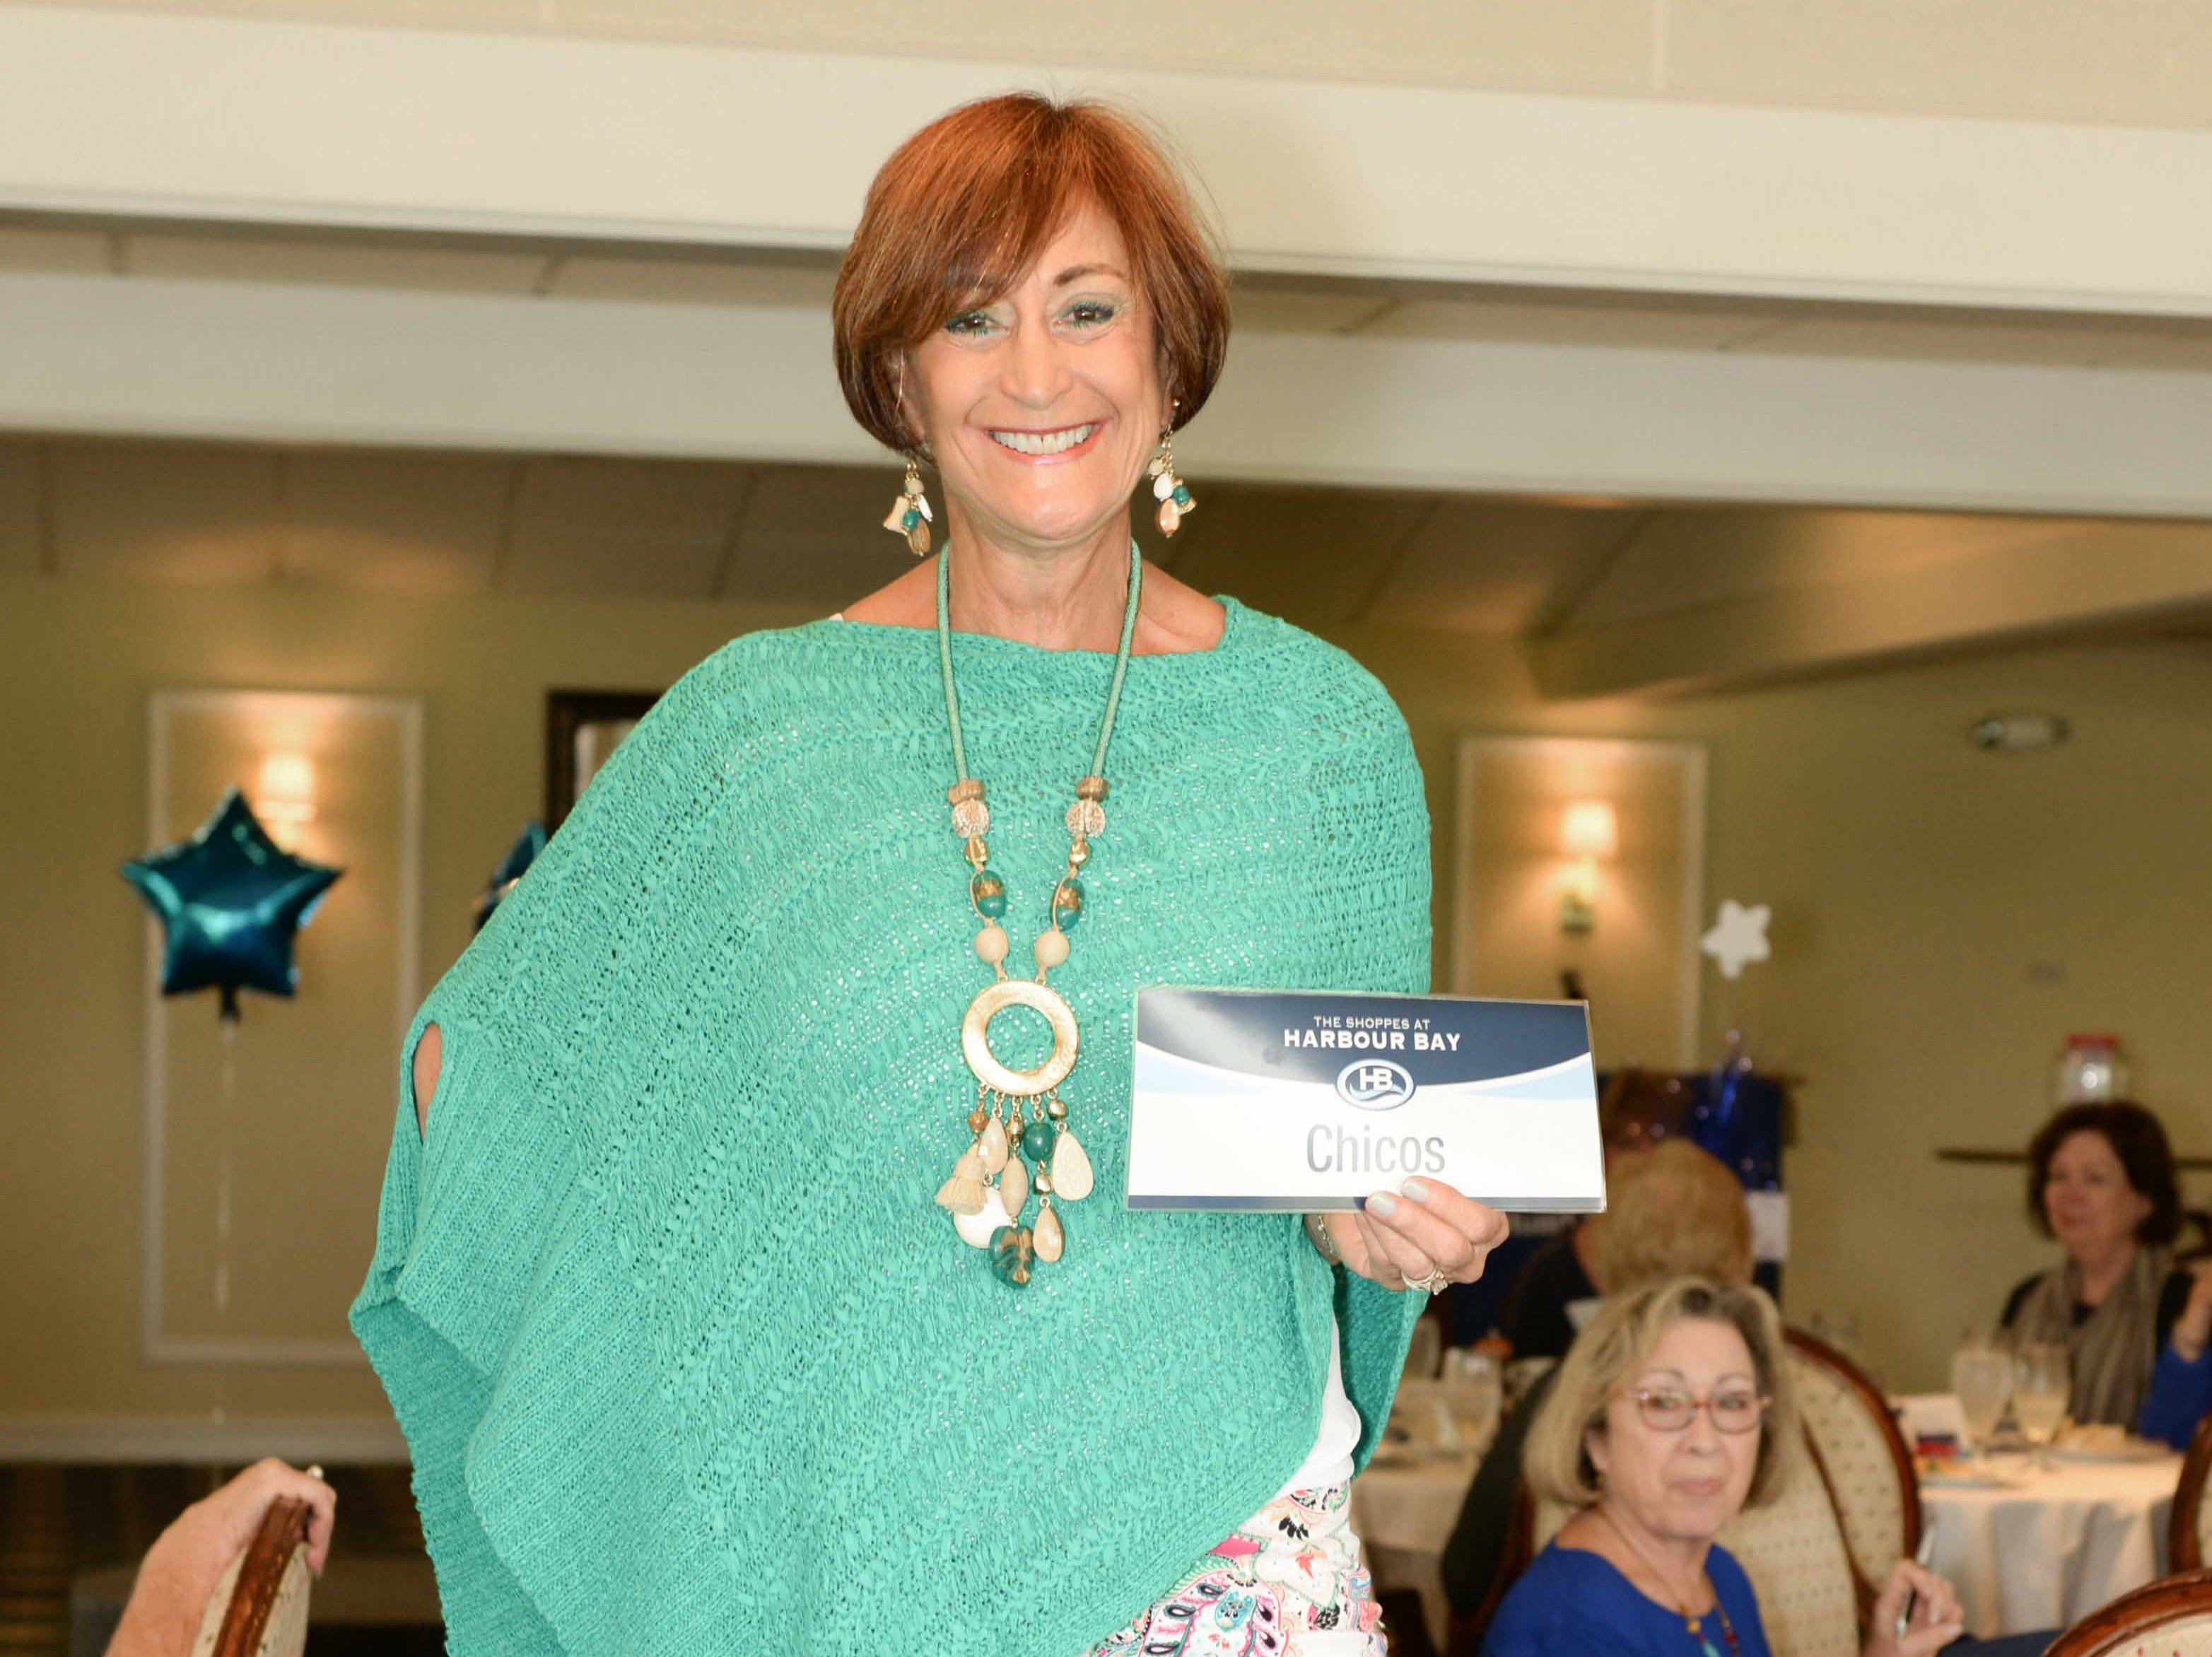 Janie Copes models an outfit from Chico's at the American Association of University Women's 45th Anniversary luncheon and fashion show.